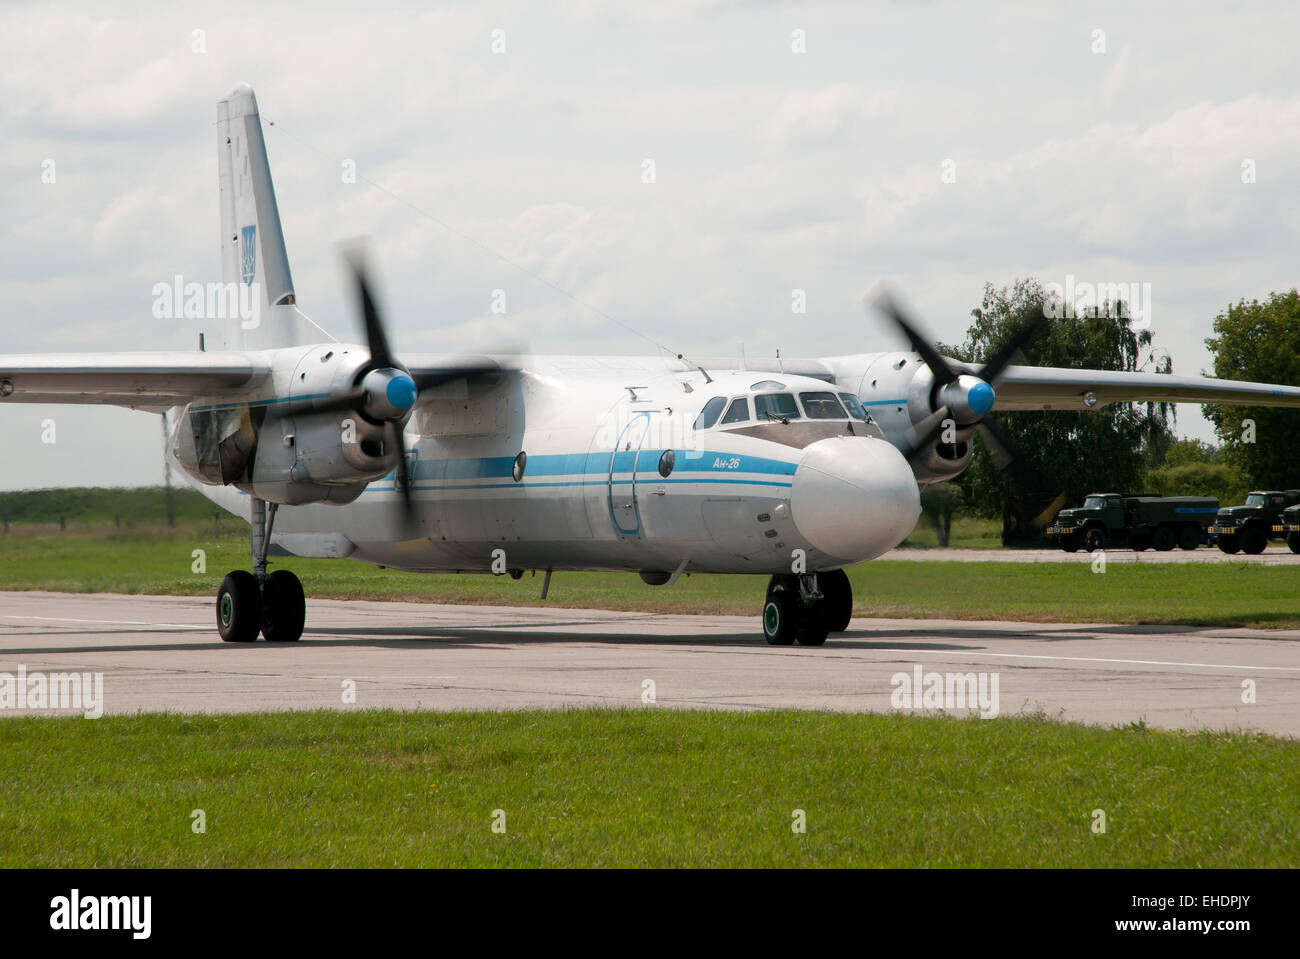 Aircraft Antonov An-26 Ukrainian Air Force  was taxiing to the runway. - Stock Image